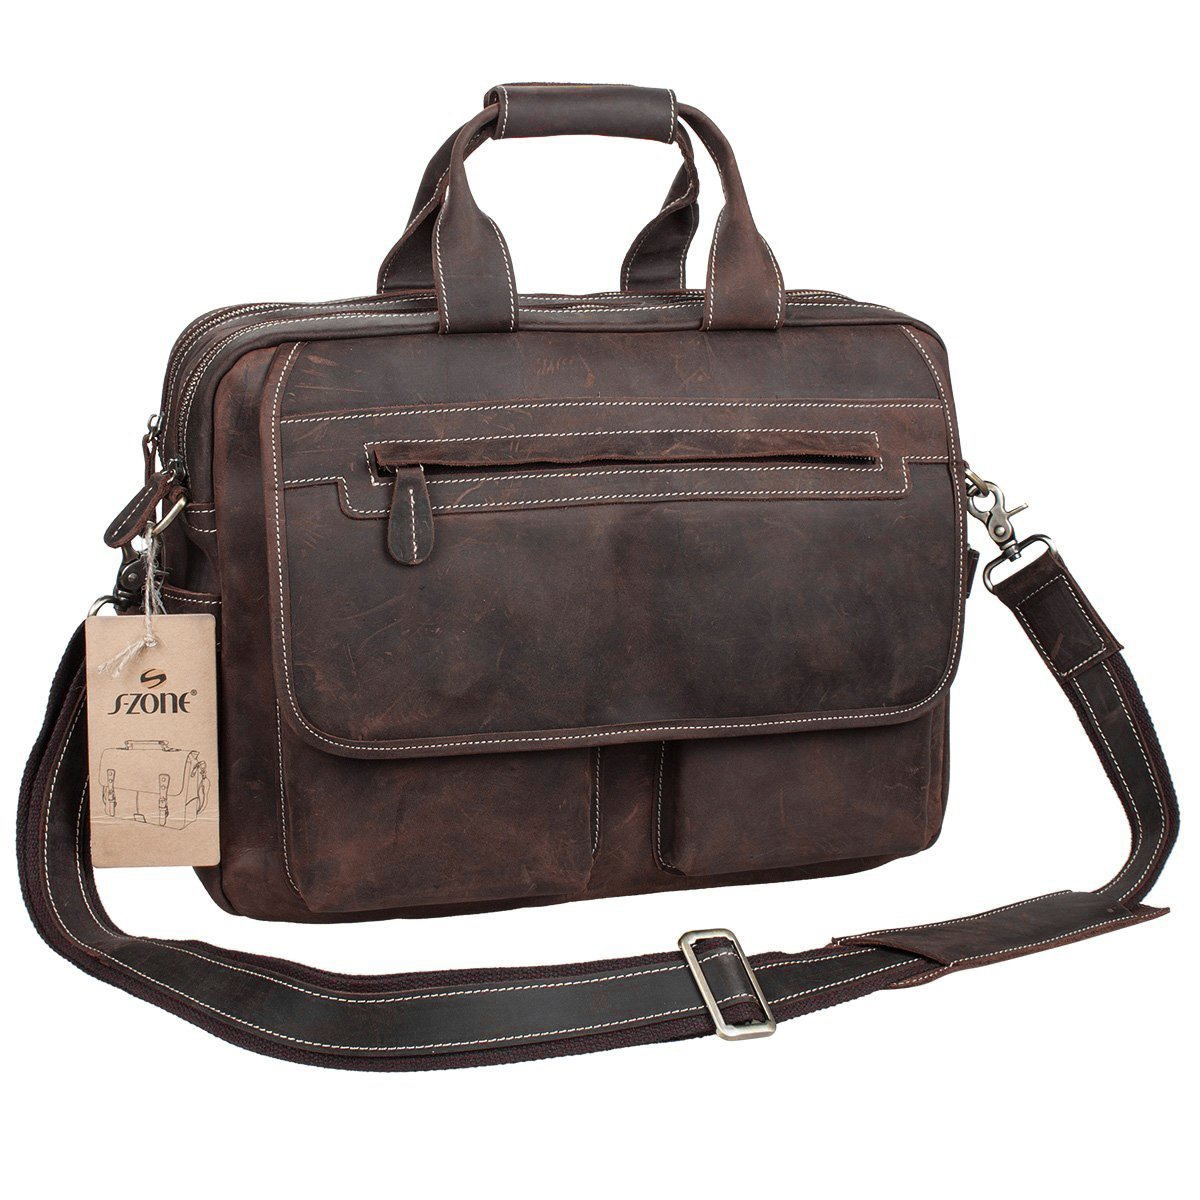 S-ZONE Crazy Horse Leather Shoulder Briefcase for 16 Inch Laptop Bag by S-ZONE (Image #2)